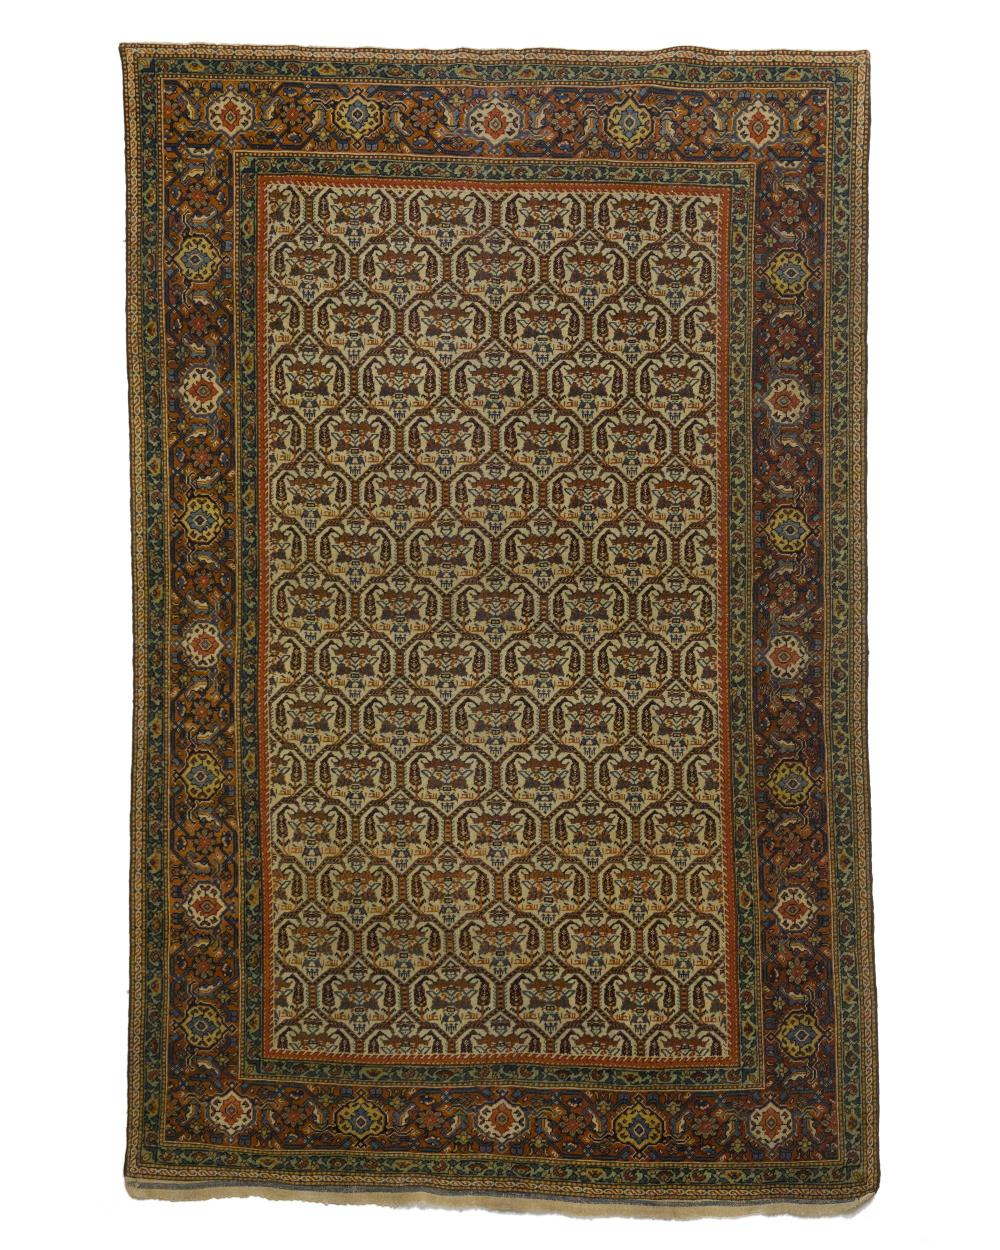 A hand-knotted Fereghan rug